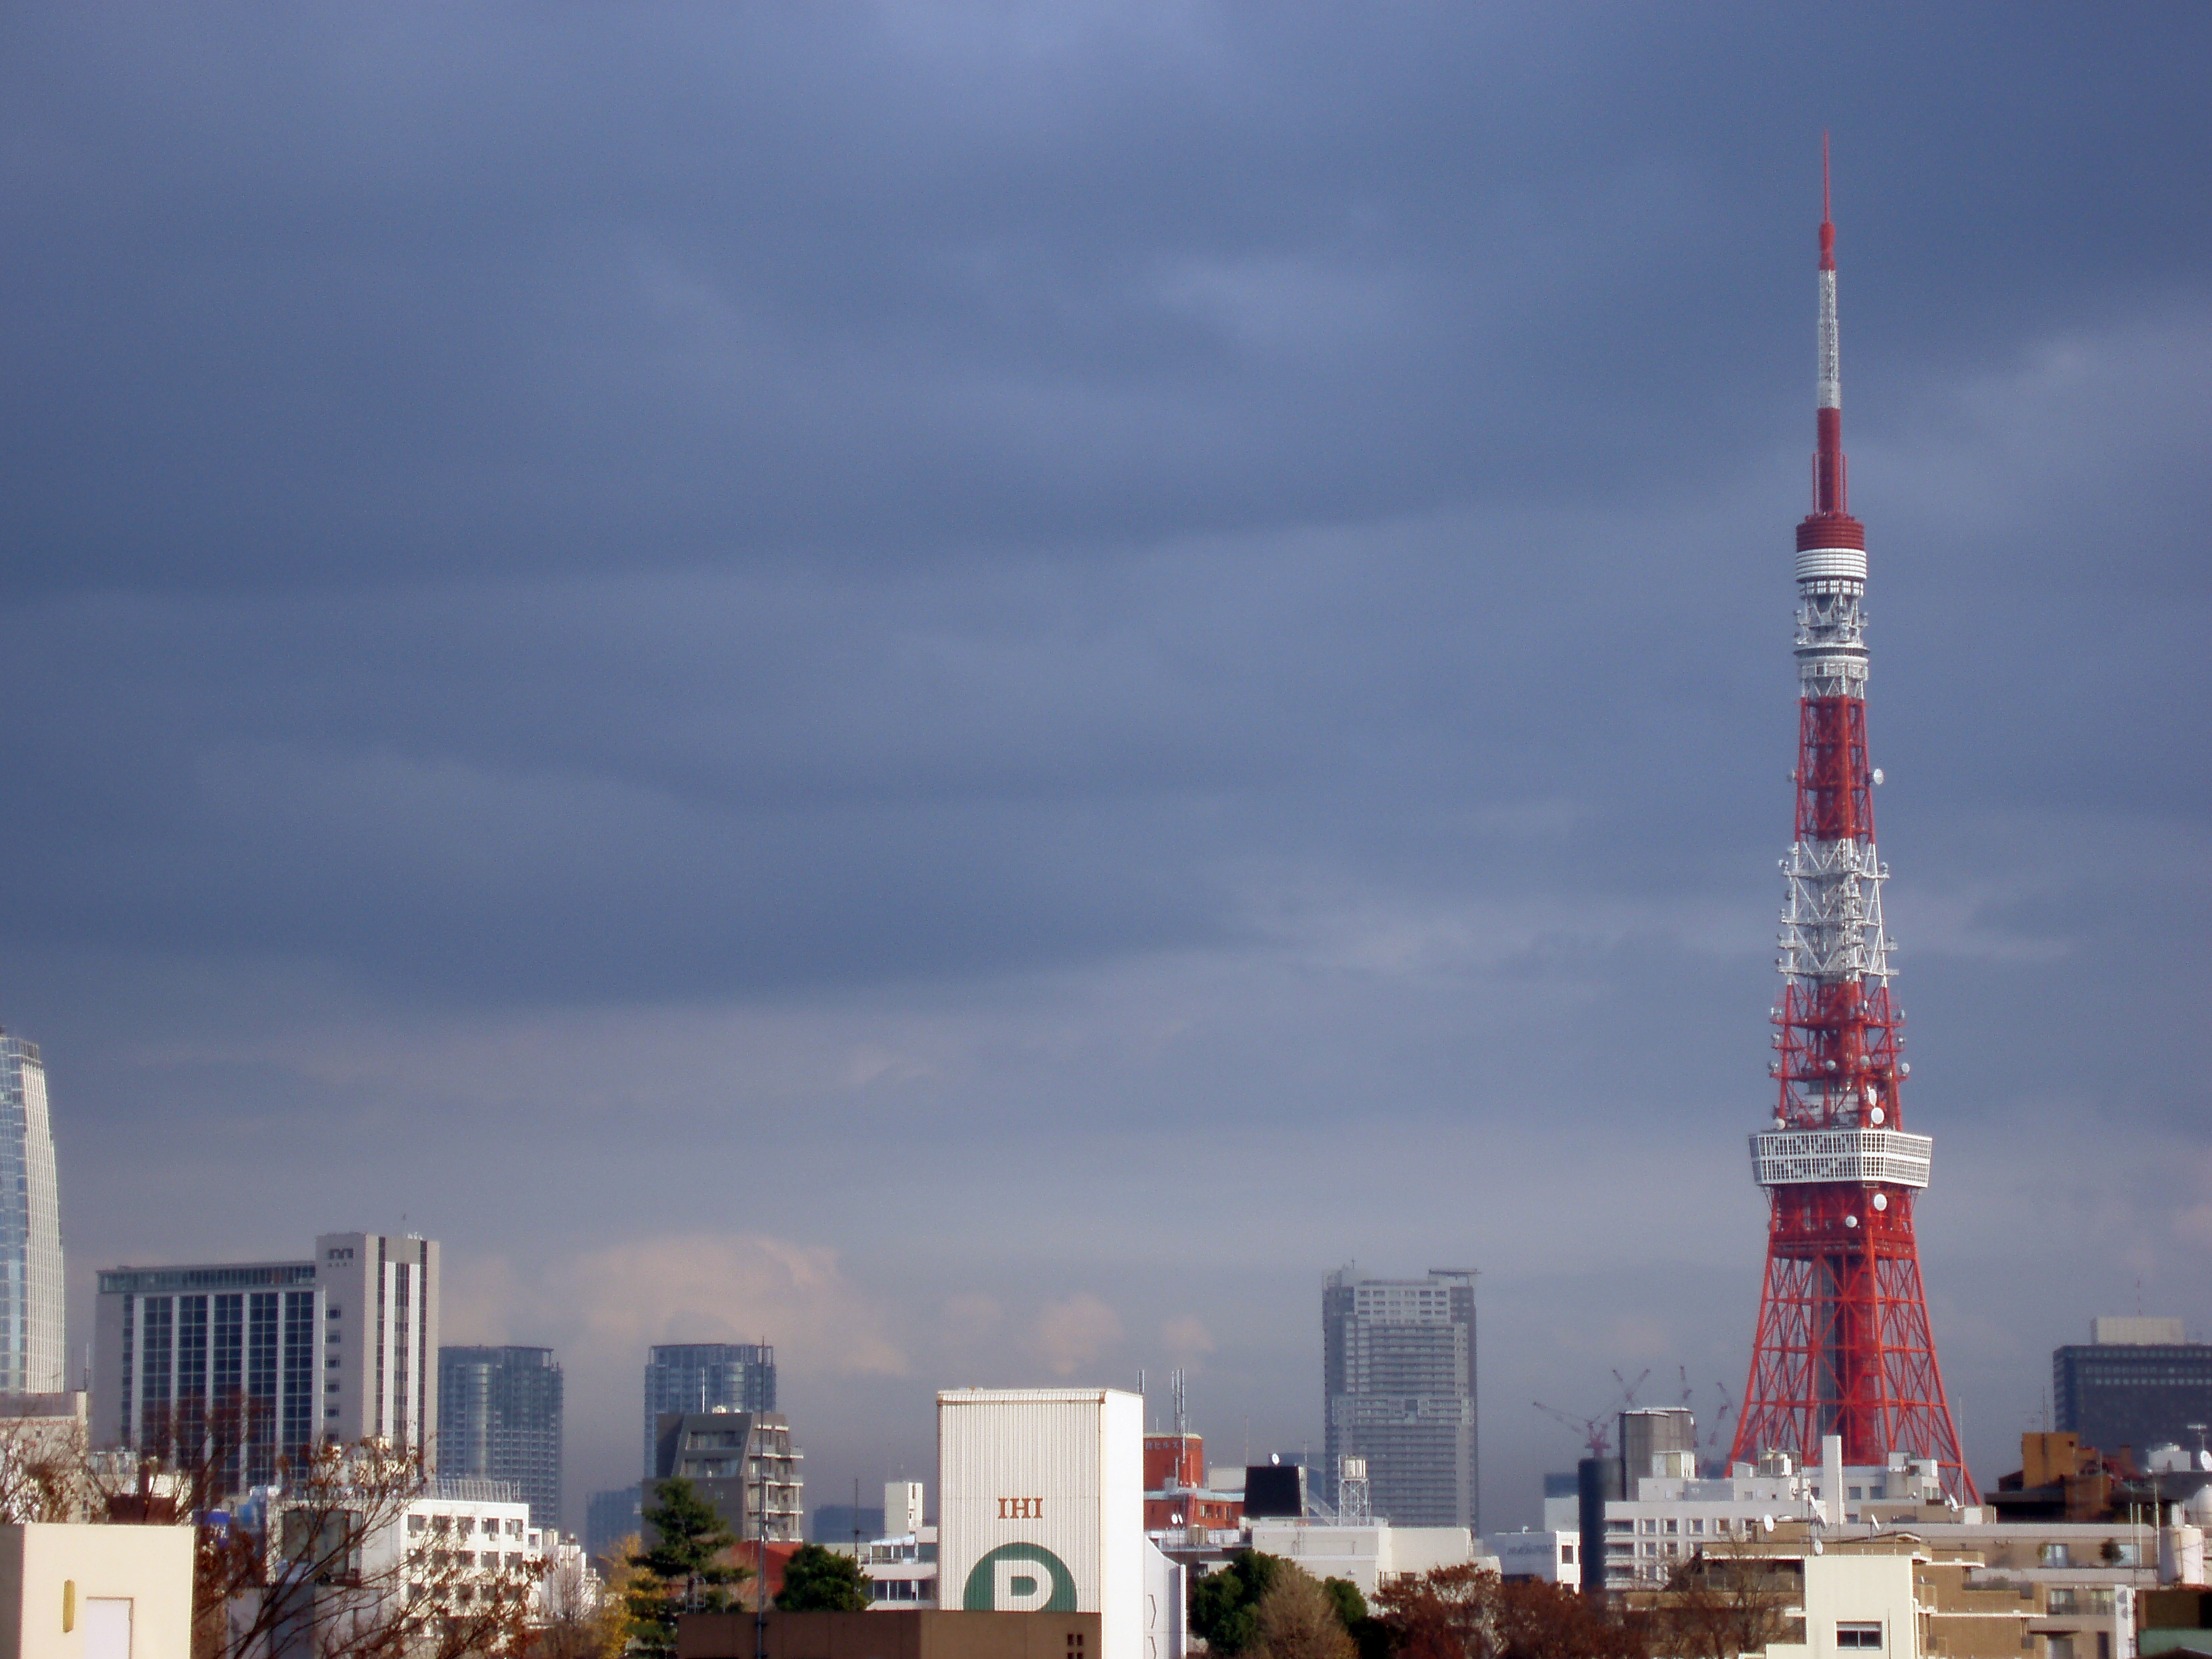 stormy sky with the tokyo tv tower at other buildings, tokyo, japan